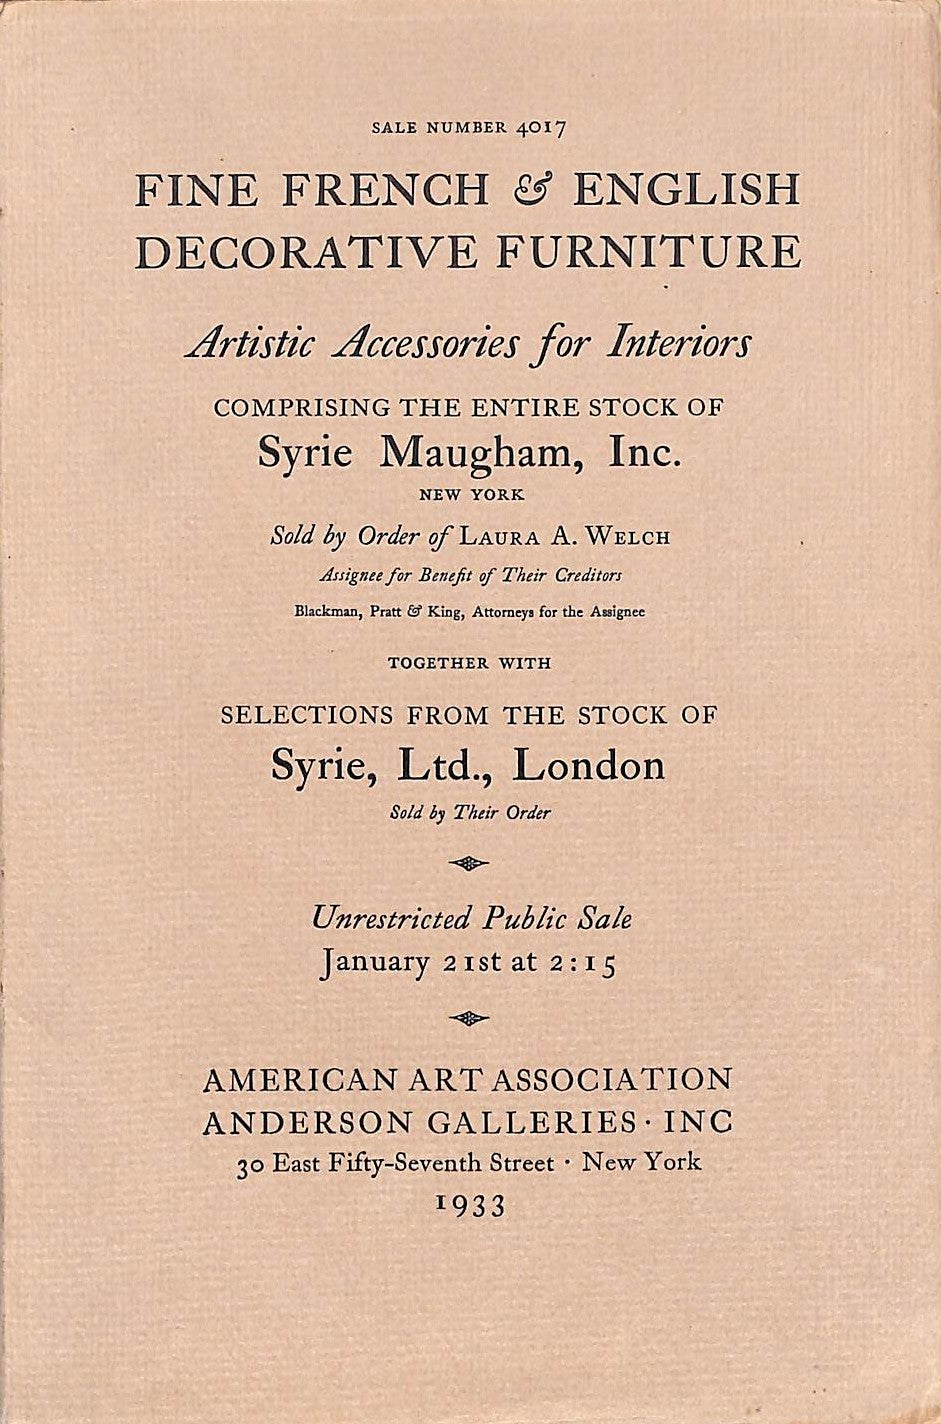 """Fine French & English Decorative Furniture"" 1933 Comprising The Entire Stock of Syrie Maugham"